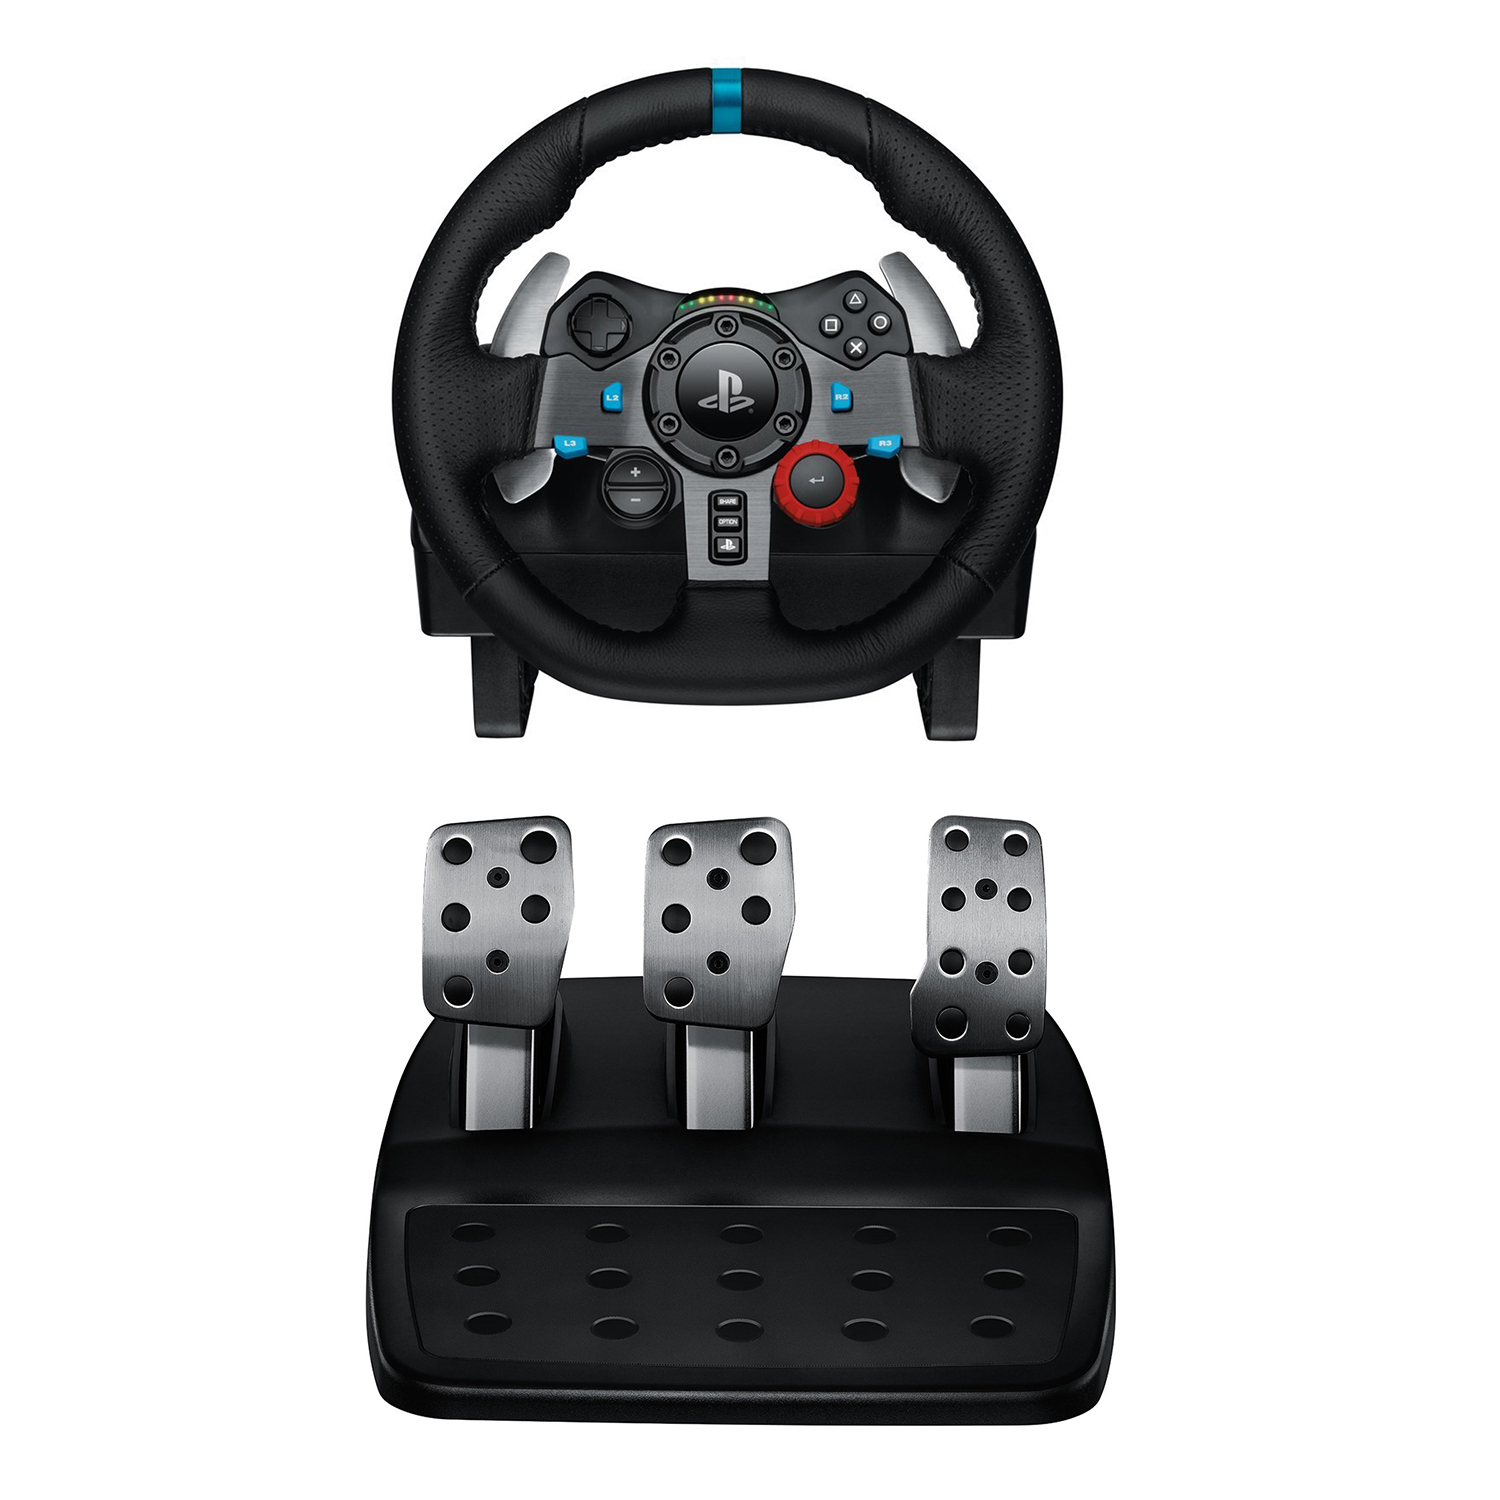 Refurbished Logitech 941000110 Driving Force G29 Racing Wheel for PlayStation 4 and PlayStation 3